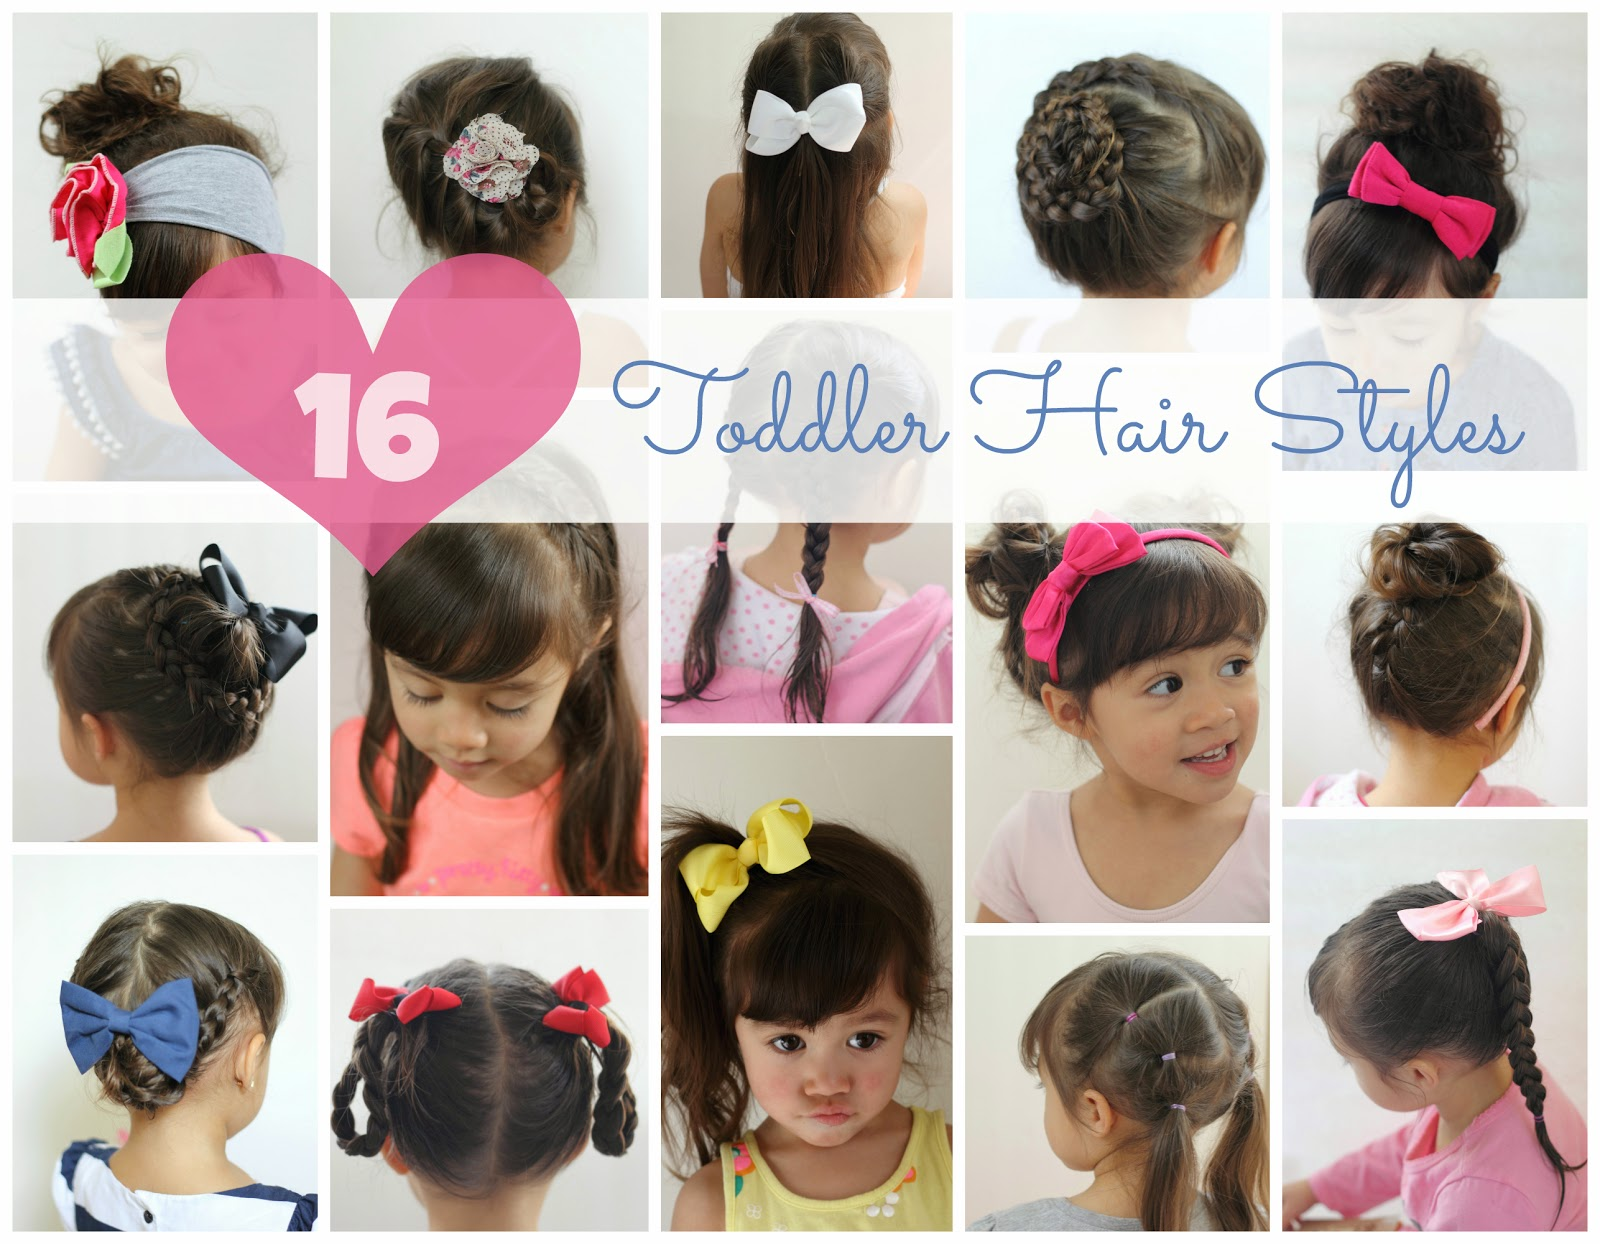 Make It Cozee 16 Toddler Hair Styles